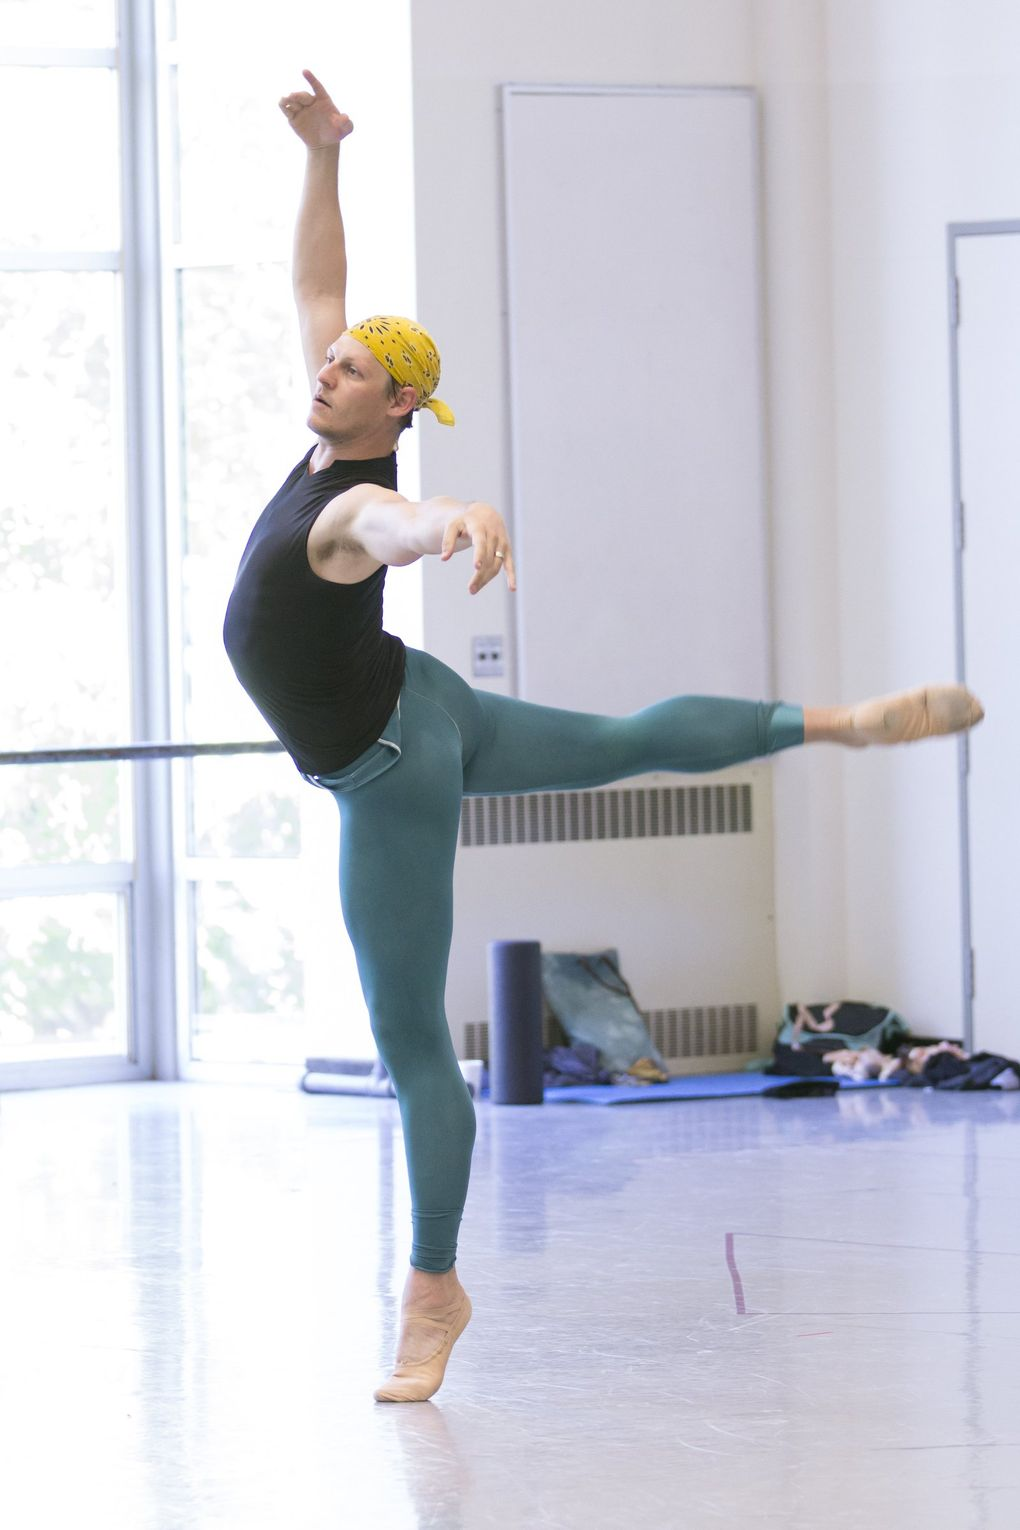 Pacific Northwest Ballet soloist Joshua Grant has danced on pointe when he was a member of Les Ballets Trockadero de Monte Carlo. Grant is currently choreographing a new work that will feature Ashton Edwards on pointe. (Lindsay Thomas)